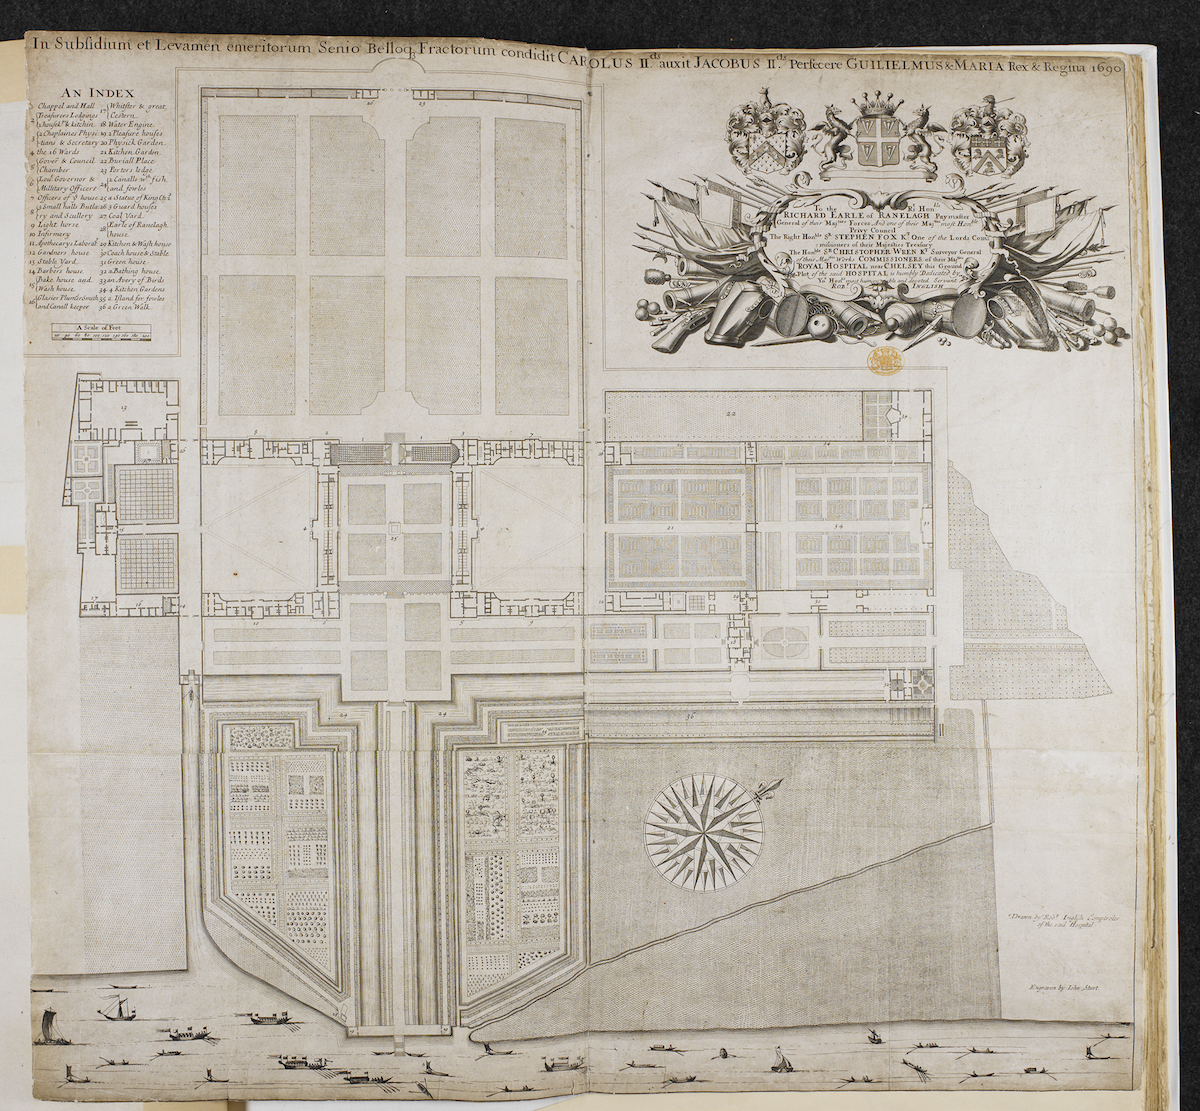 The Ground Plot. Drawing by Robert Inglish. Engraving by John Sturt (1658-1730) © British Library Board. Cartographic Items Maps K.Top.28.4.c.